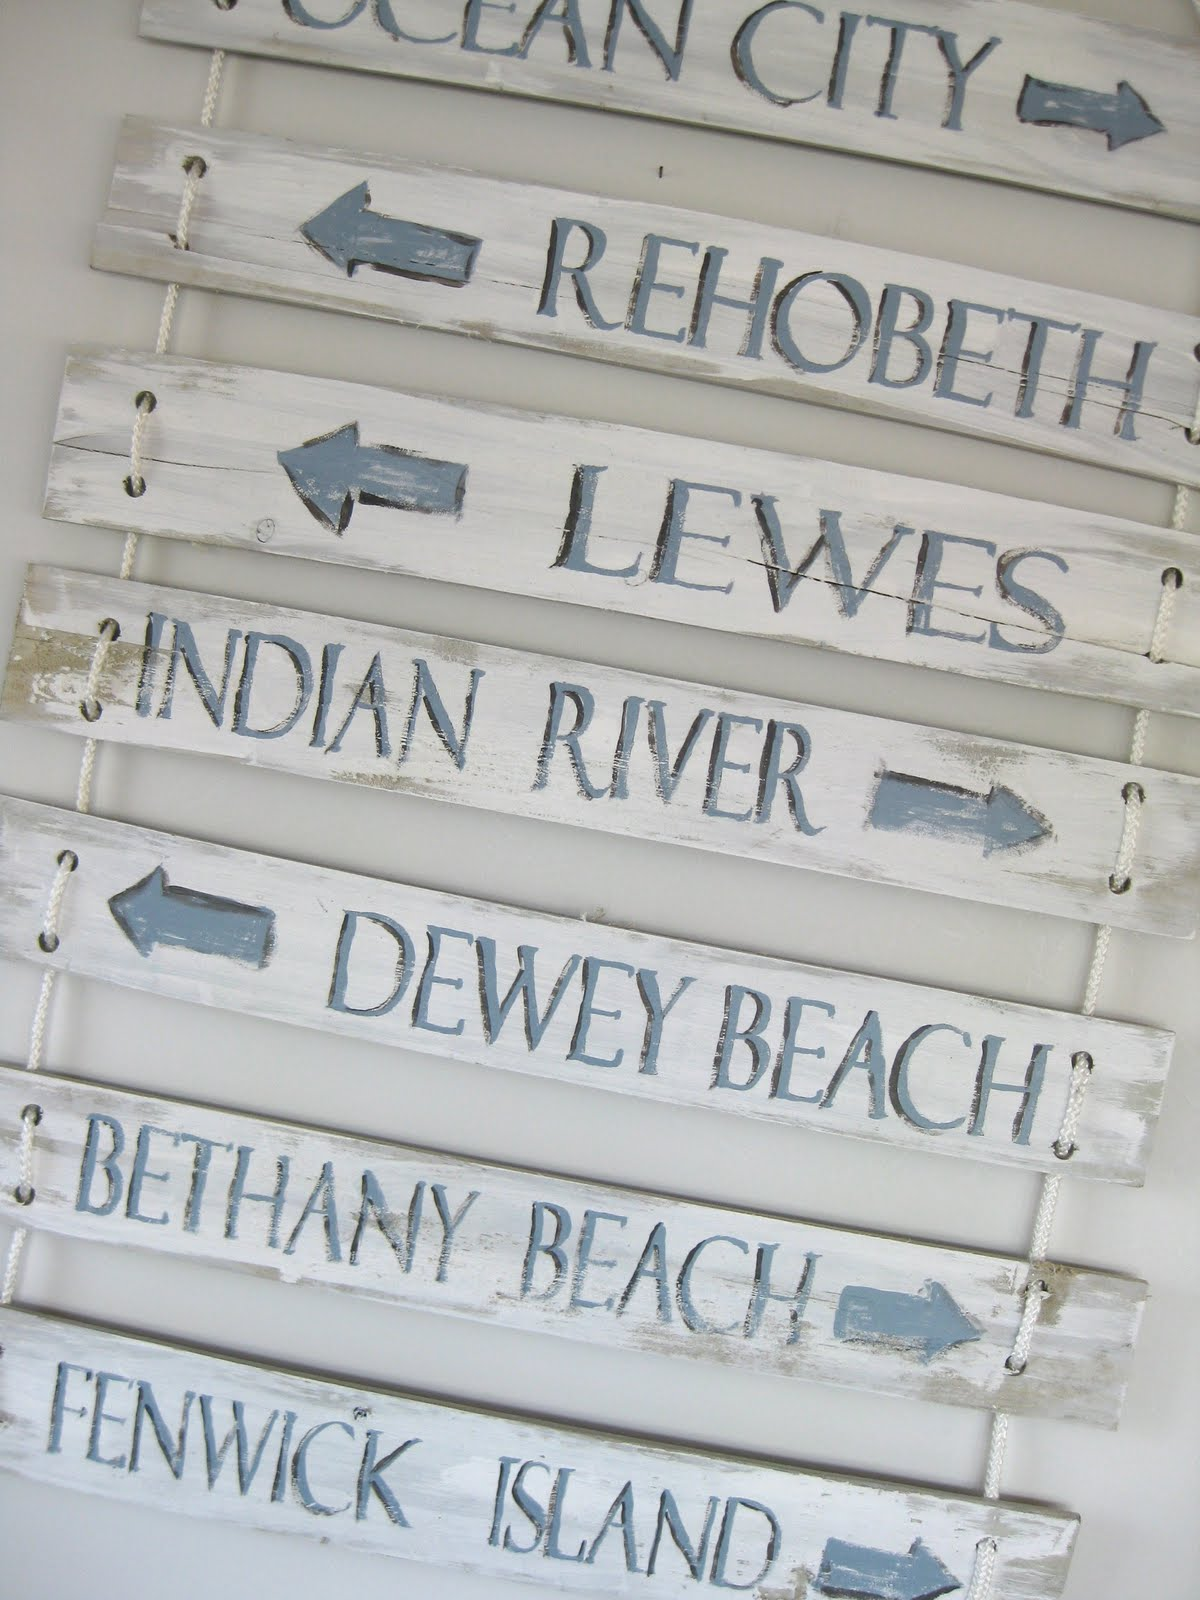 Fascinating  Best Images About Delaware On Pinterest  On Friday Lewes And  With Excellent  Best Images About Delaware On Pinterest  On Friday Lewes And Living  Fossil With Cute Modern Garden Company Also Book Shops In Covent Garden In Addition Bonfires In Gardens And Torcher Garden As Well As Secret Garden Pub Battersea Additionally Slatted Panels Garden From Pinterestcom With   Excellent  Best Images About Delaware On Pinterest  On Friday Lewes And  With Cute  Best Images About Delaware On Pinterest  On Friday Lewes And Living  Fossil And Fascinating Modern Garden Company Also Book Shops In Covent Garden In Addition Bonfires In Gardens From Pinterestcom